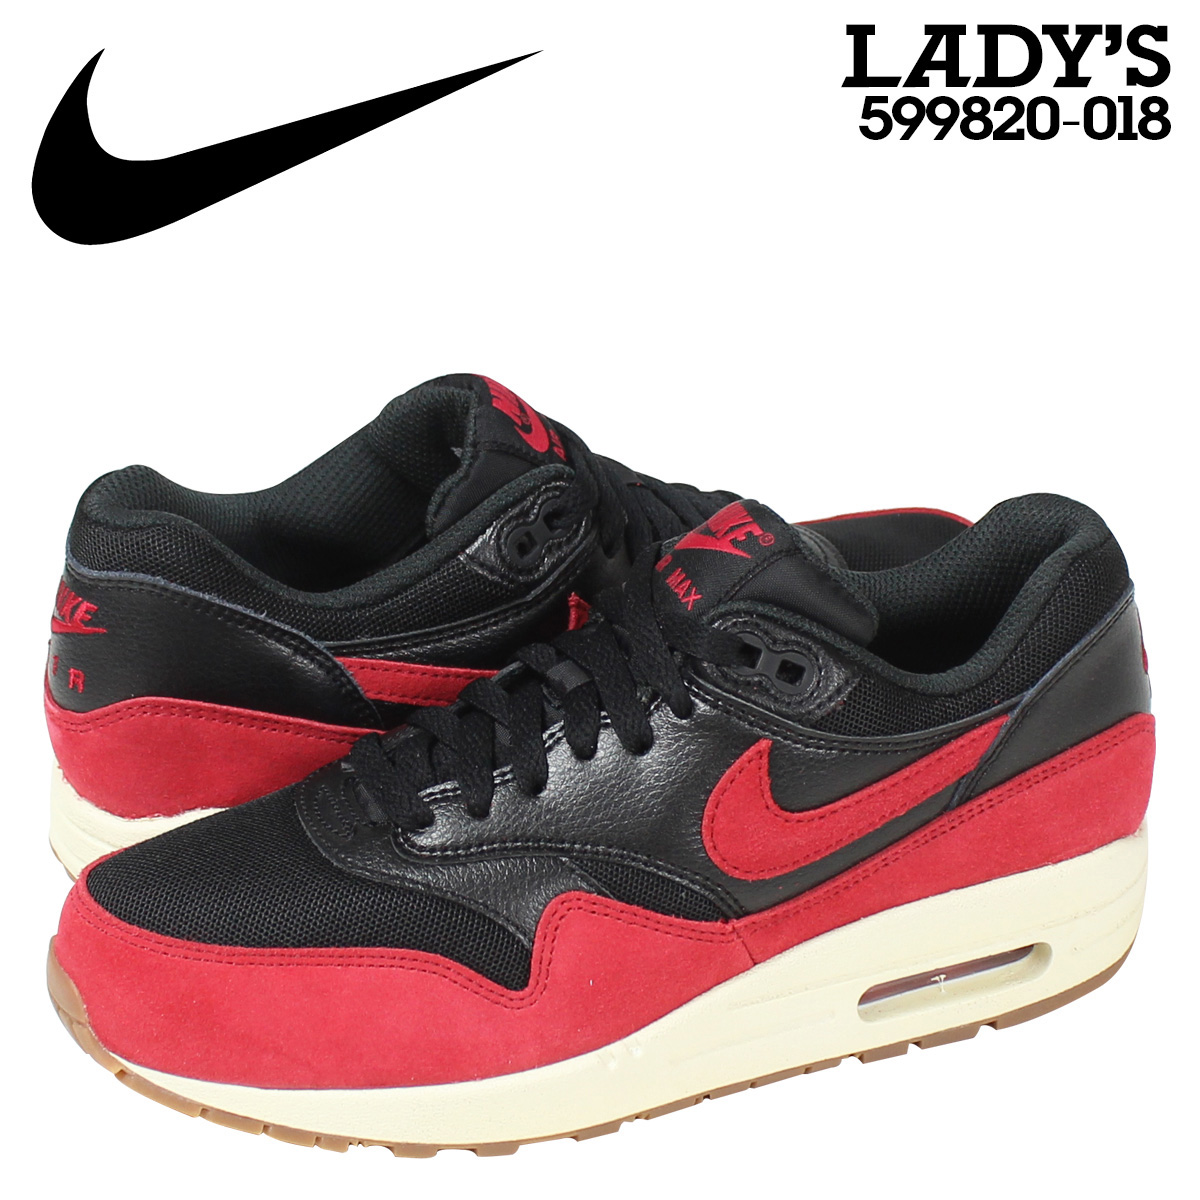 NIKE WMNS AIR MAX 1 ESSENTIAL Kie Ney AMAX 1 essential Lady's sneakers 599,820 018 red